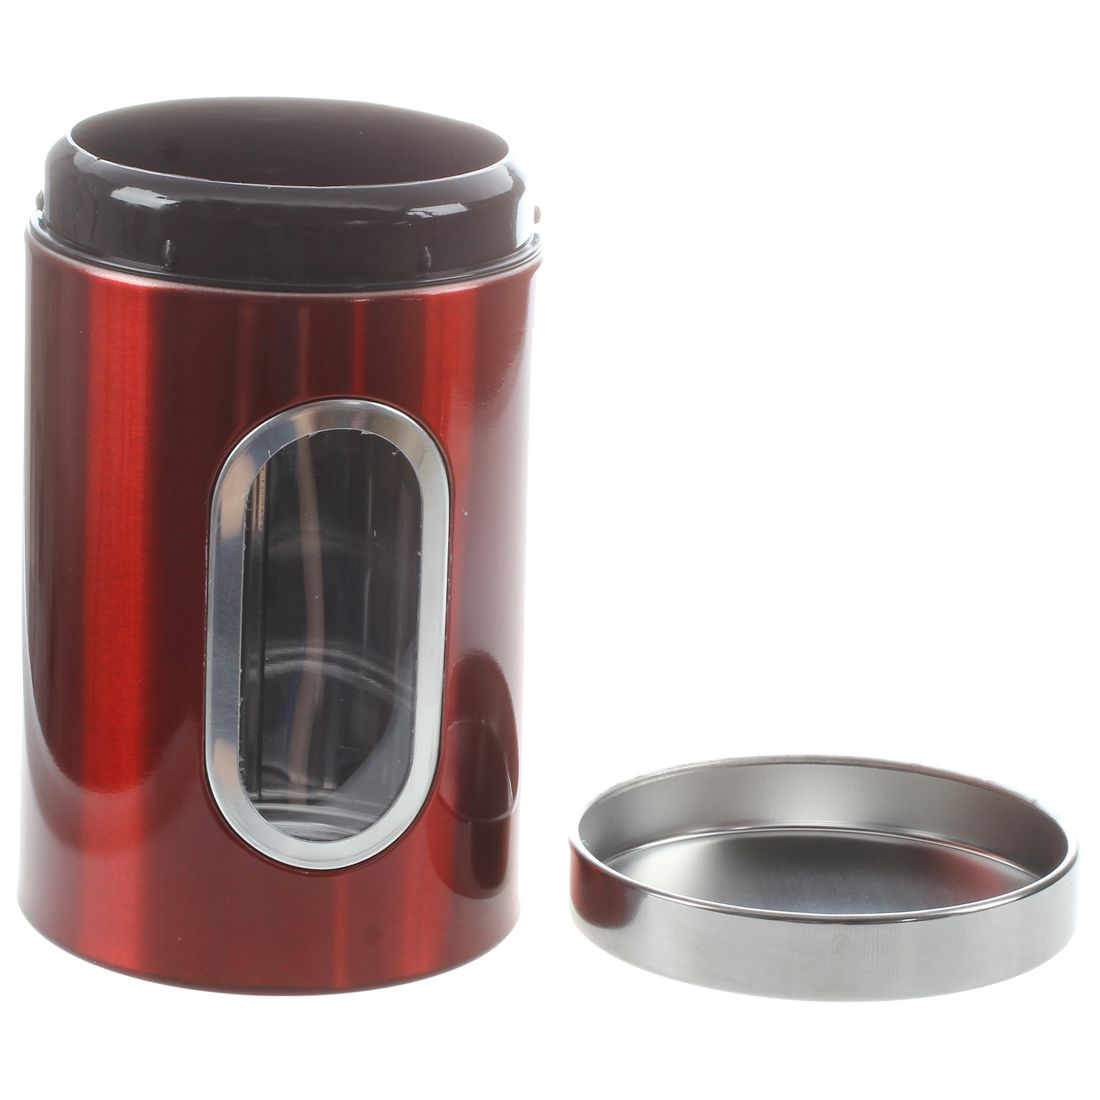 popular stainless steel canister set buy cheap stainless steel 3pcs stainless steel window canister tea coffee sugar nuts jar storage set red